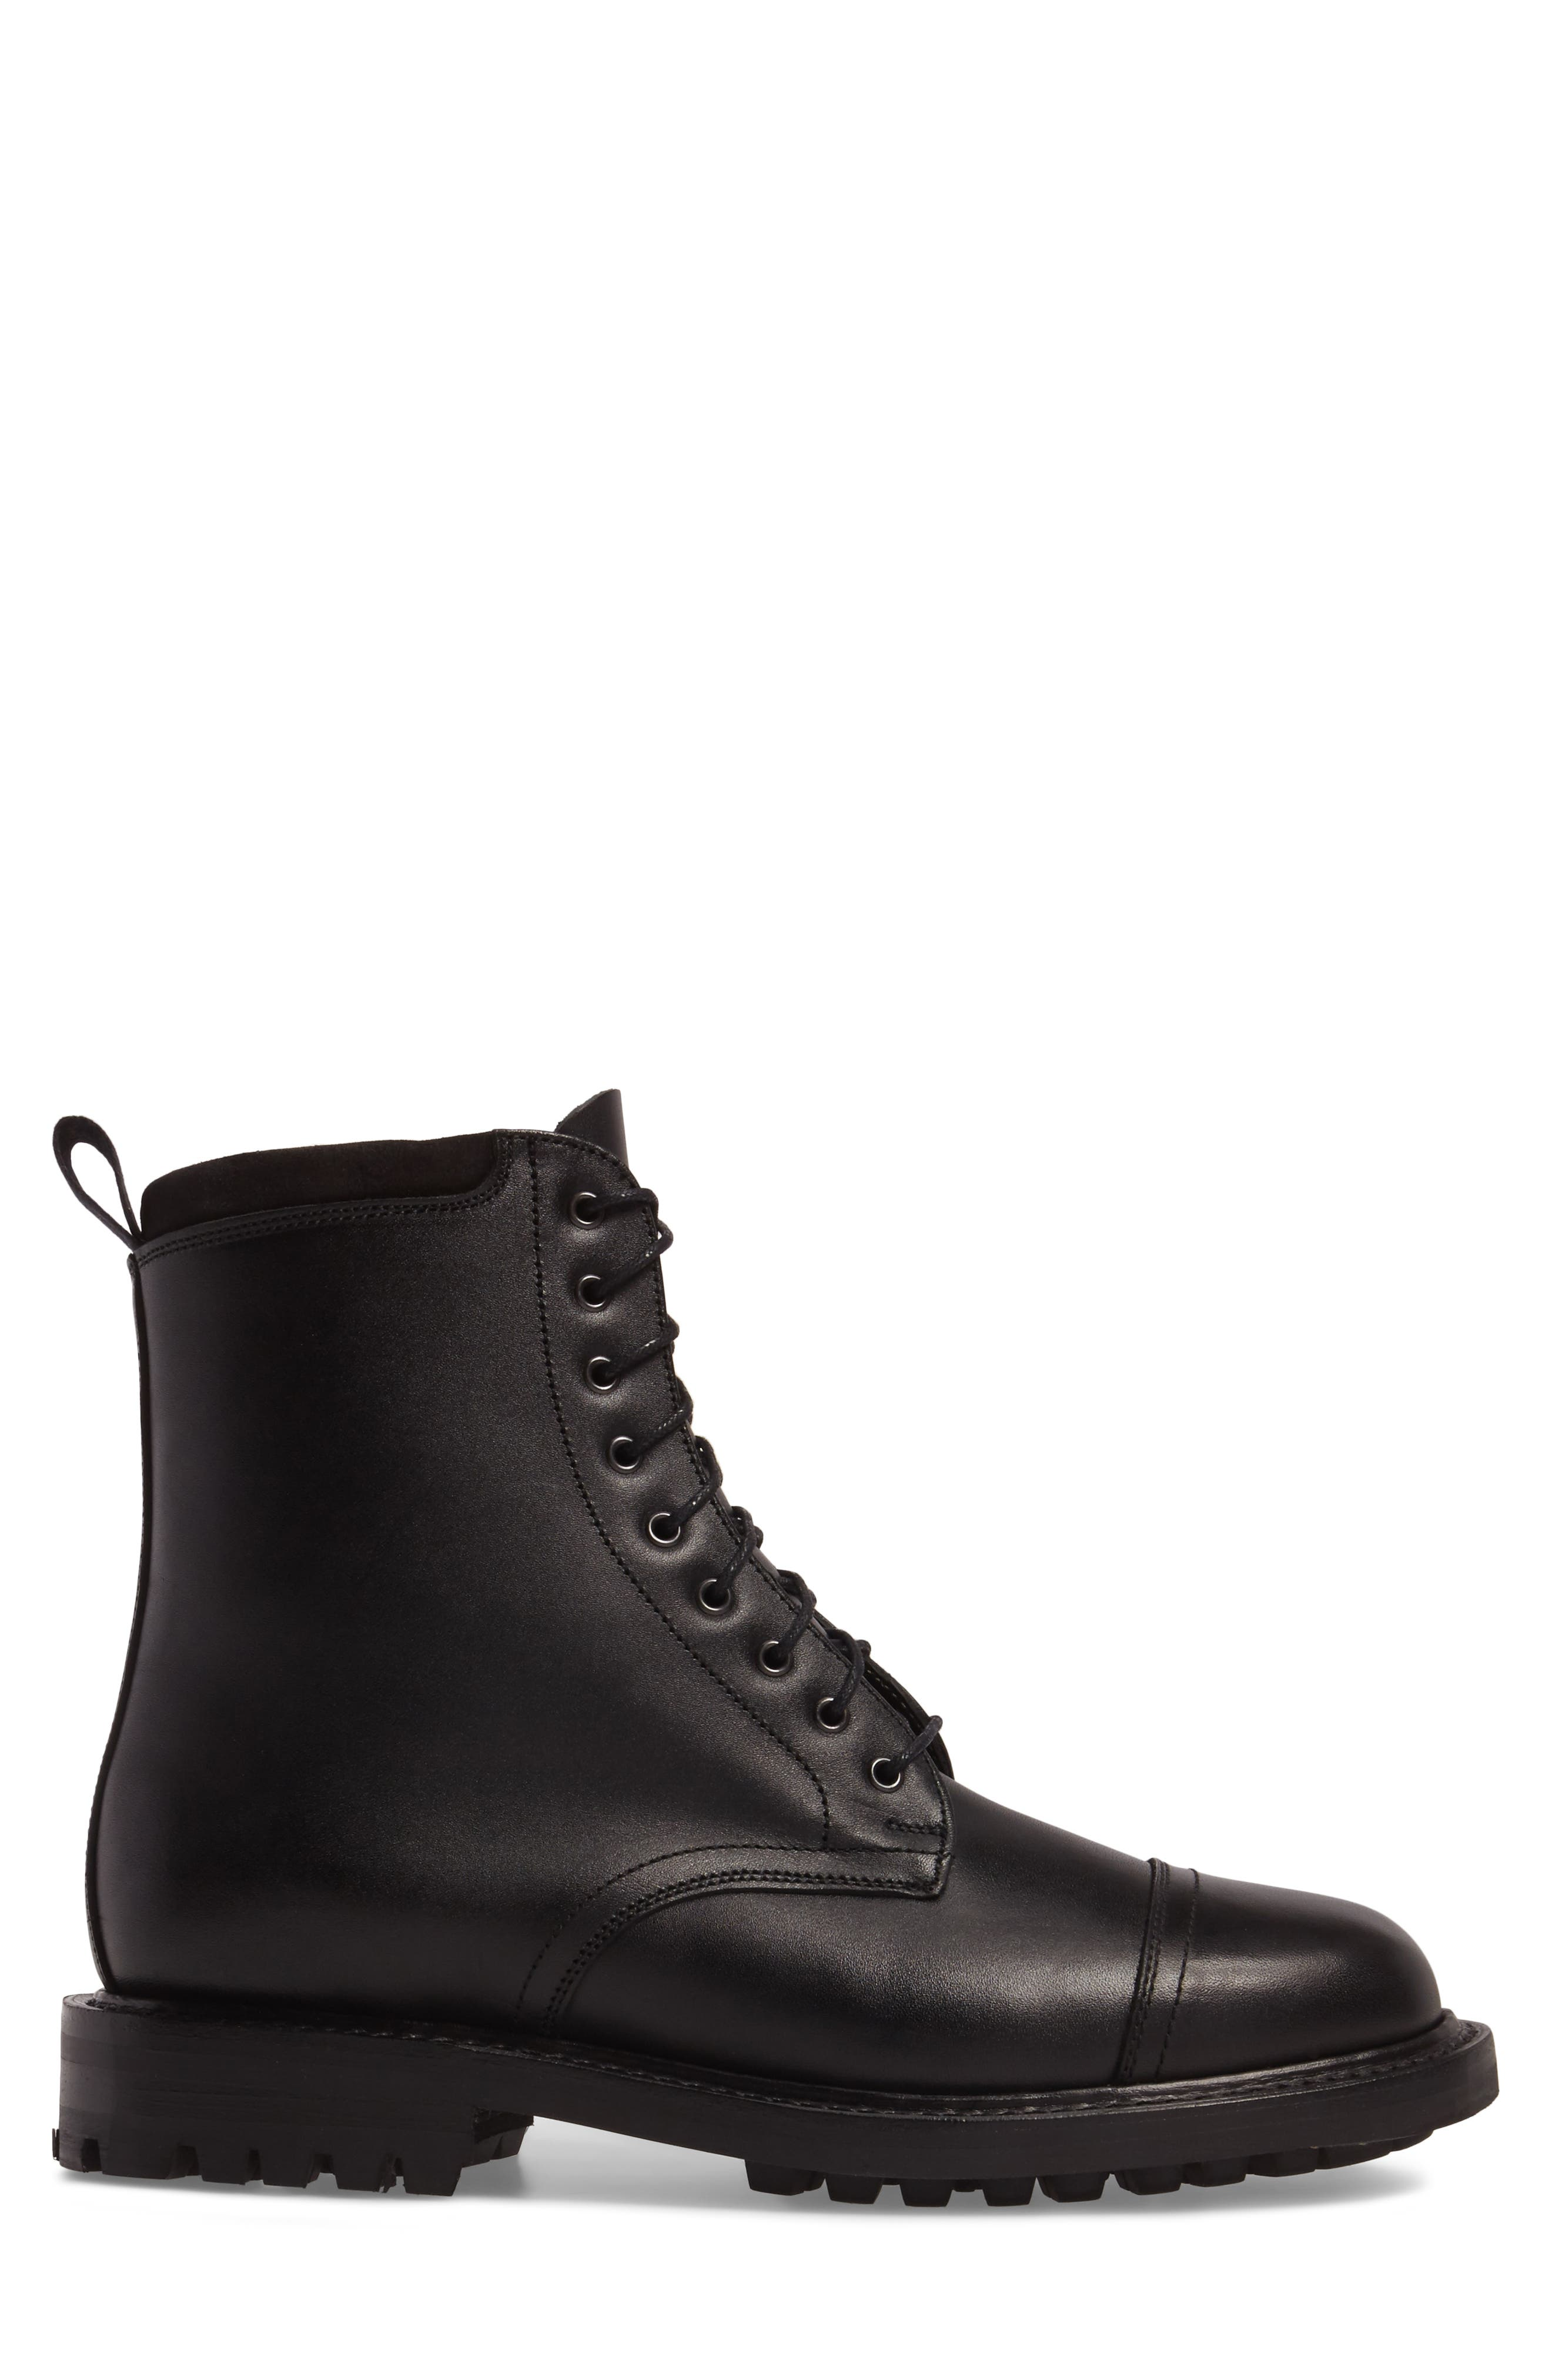 CLARKS<SUP>®</SUP>,                             Clarks Craftsmaster III Cap Toe Boot,                             Alternate thumbnail 3, color,                             BLACK LEATHER